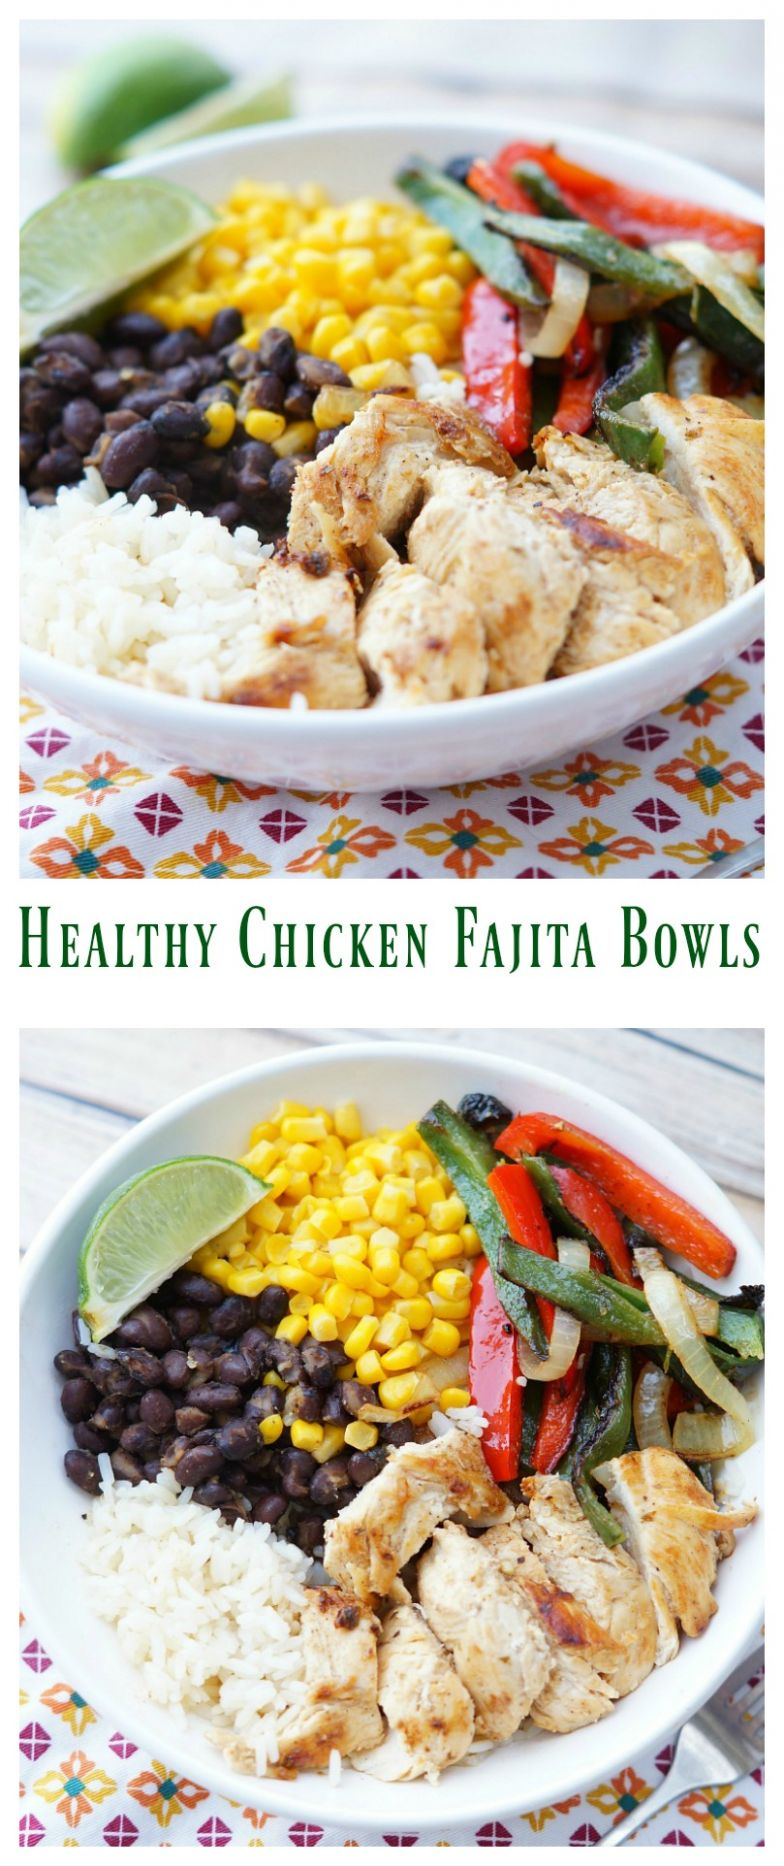 Healthy Chicken Fajita Bowls - Healthy Chicken Recipes